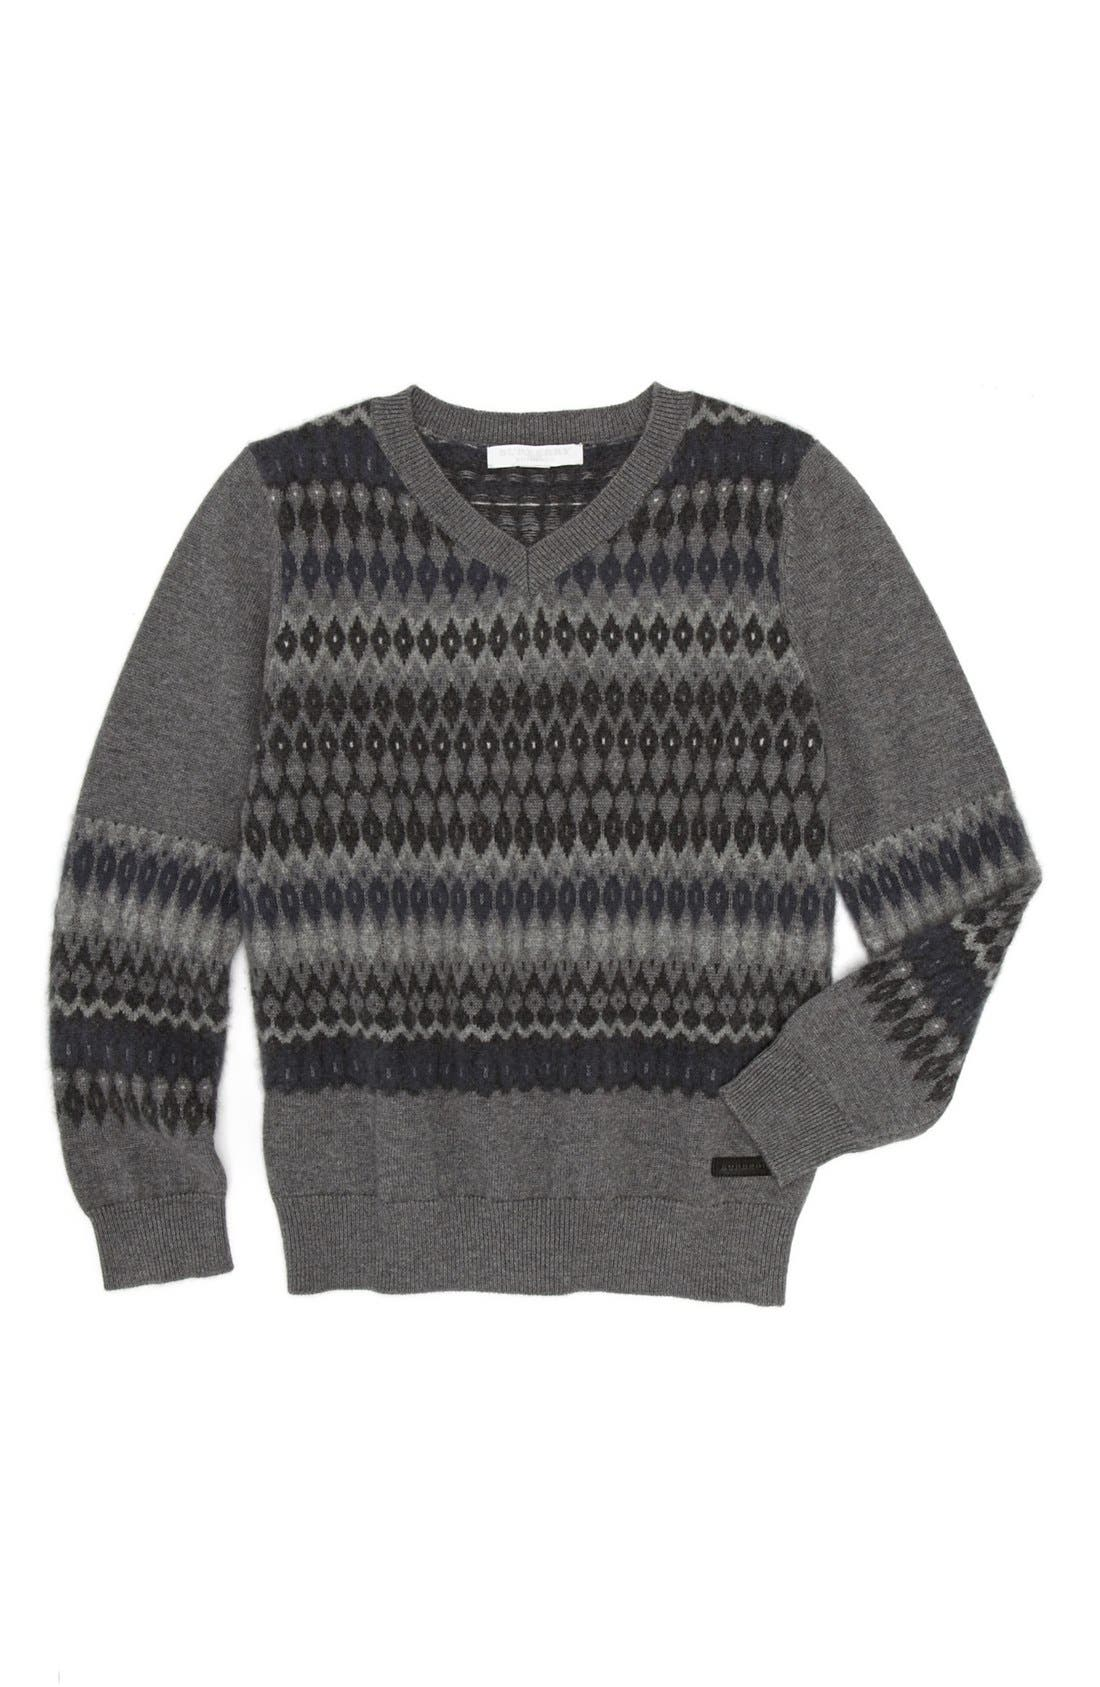 Alternate Image 1 Selected - Burberry Sweater (Little Boys & Big Boys)